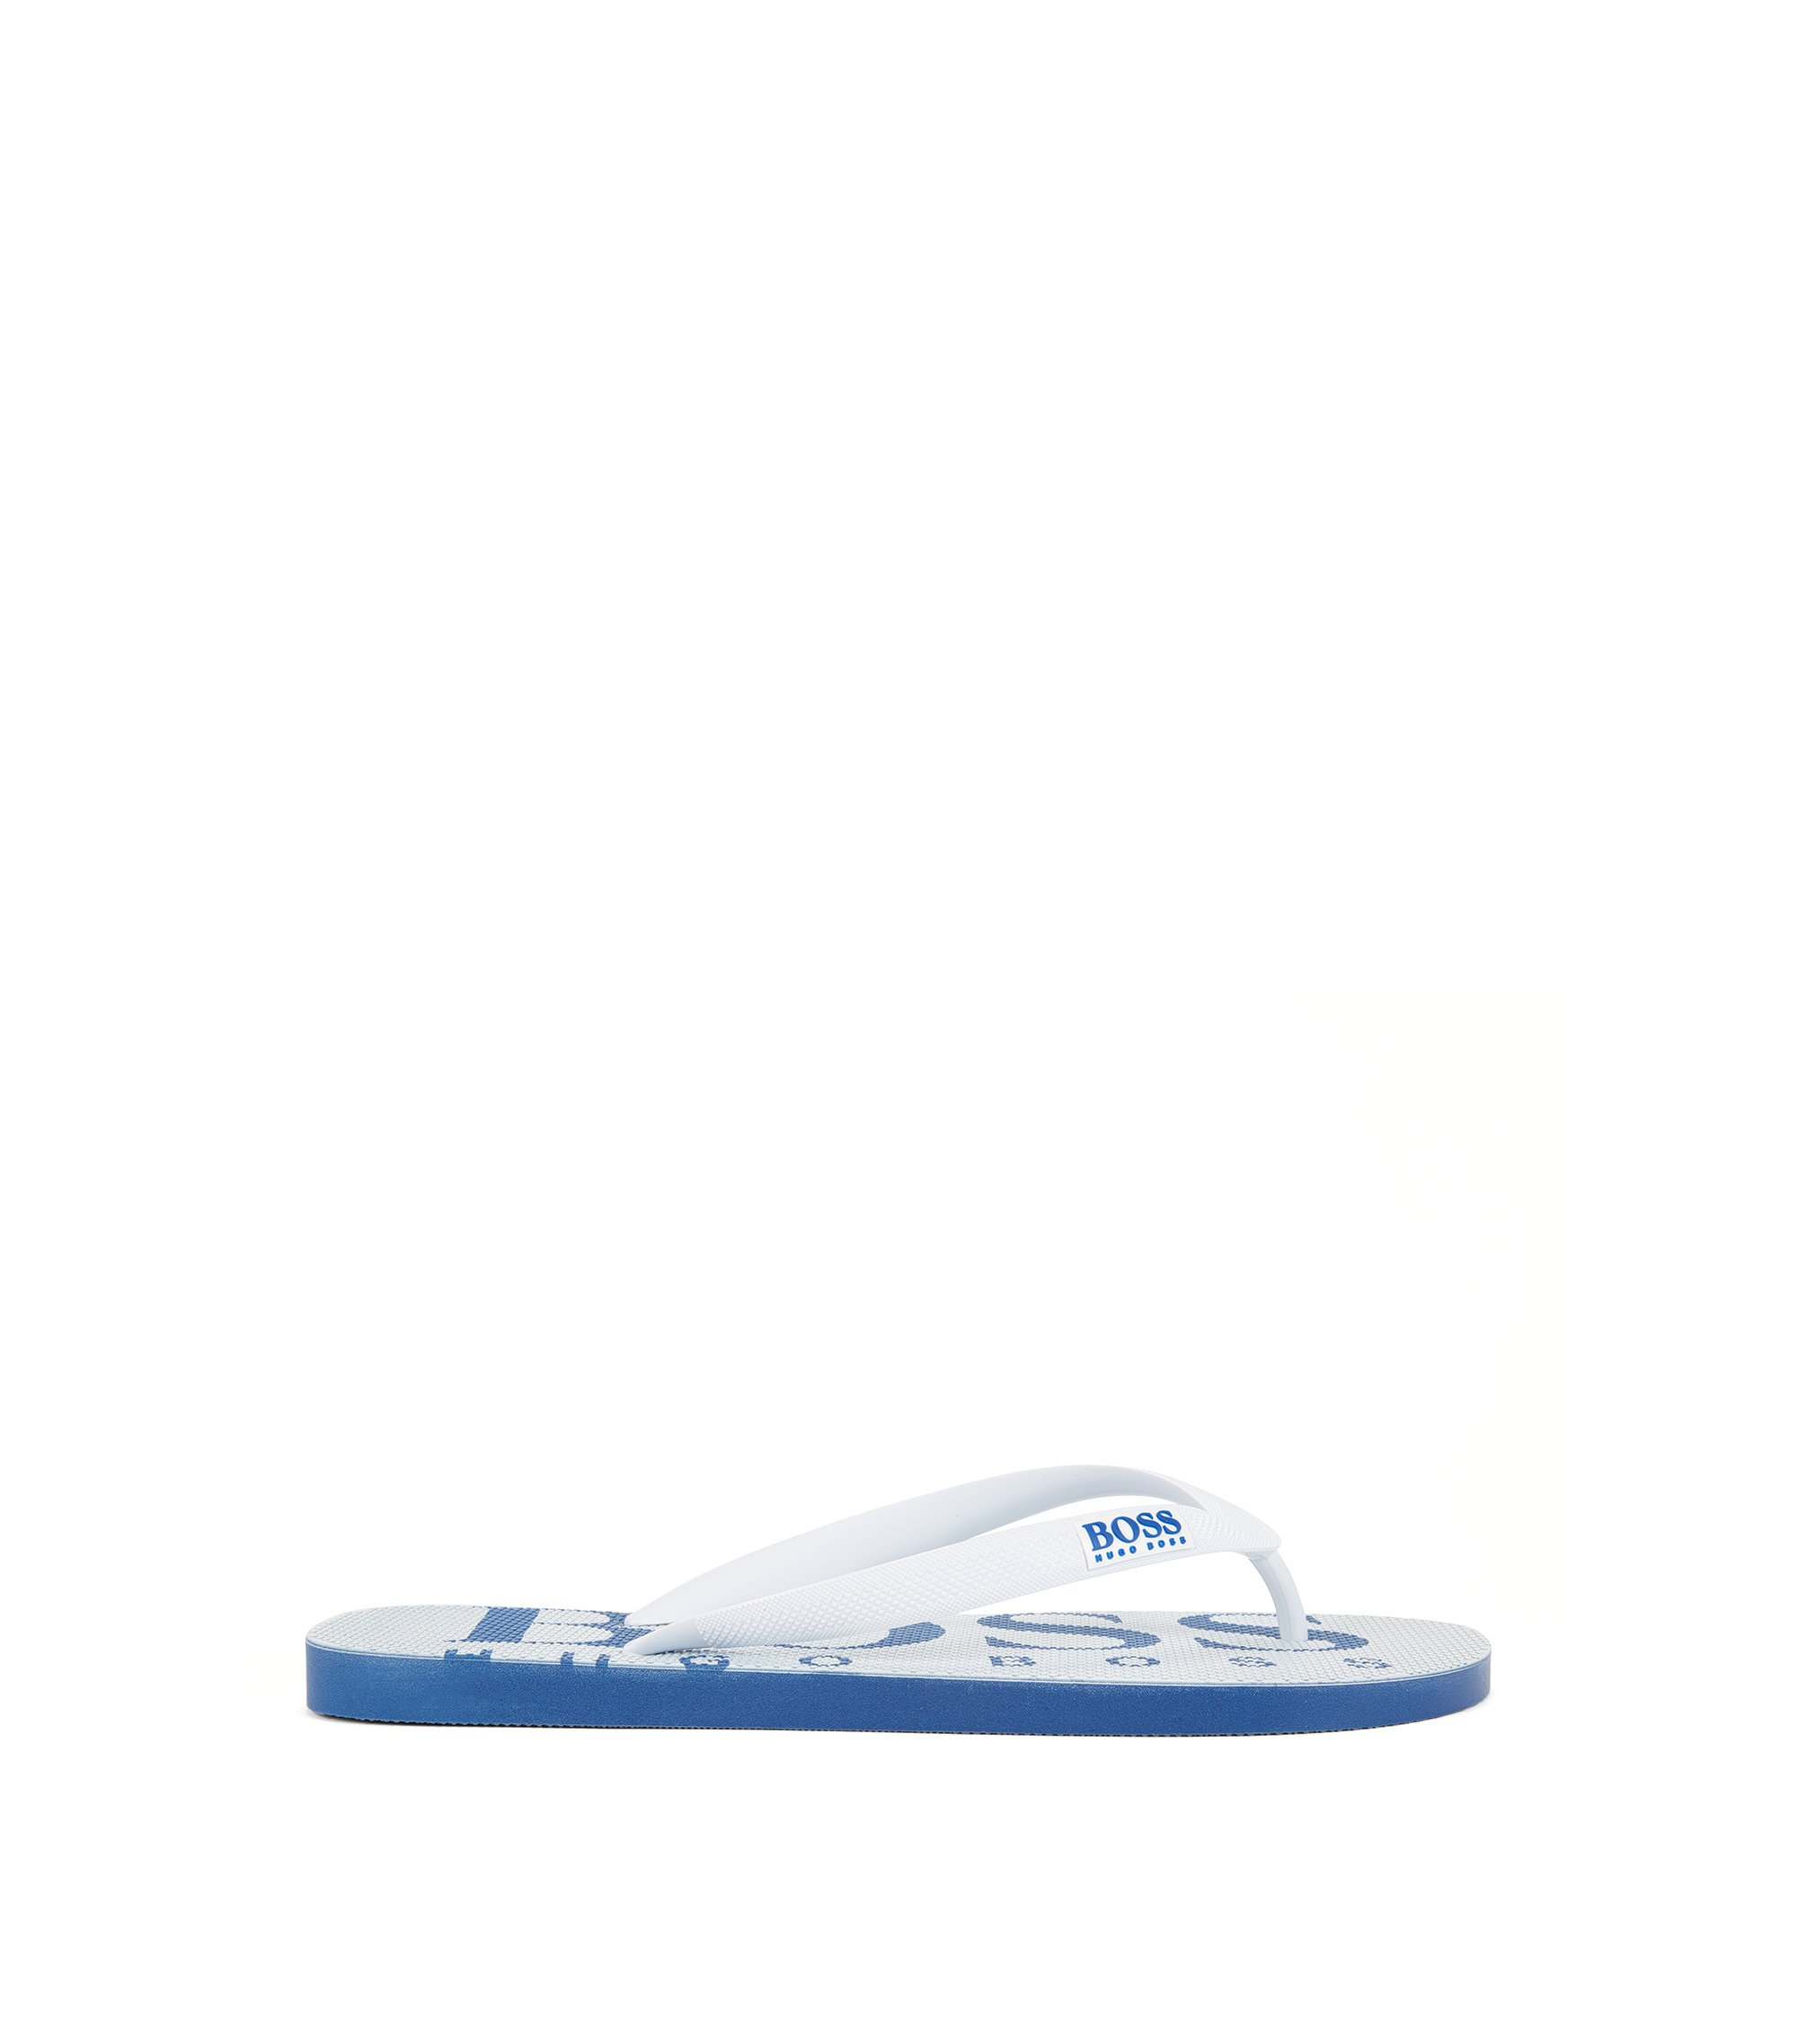 Rubber flip-flops with contrasting logo detail, White